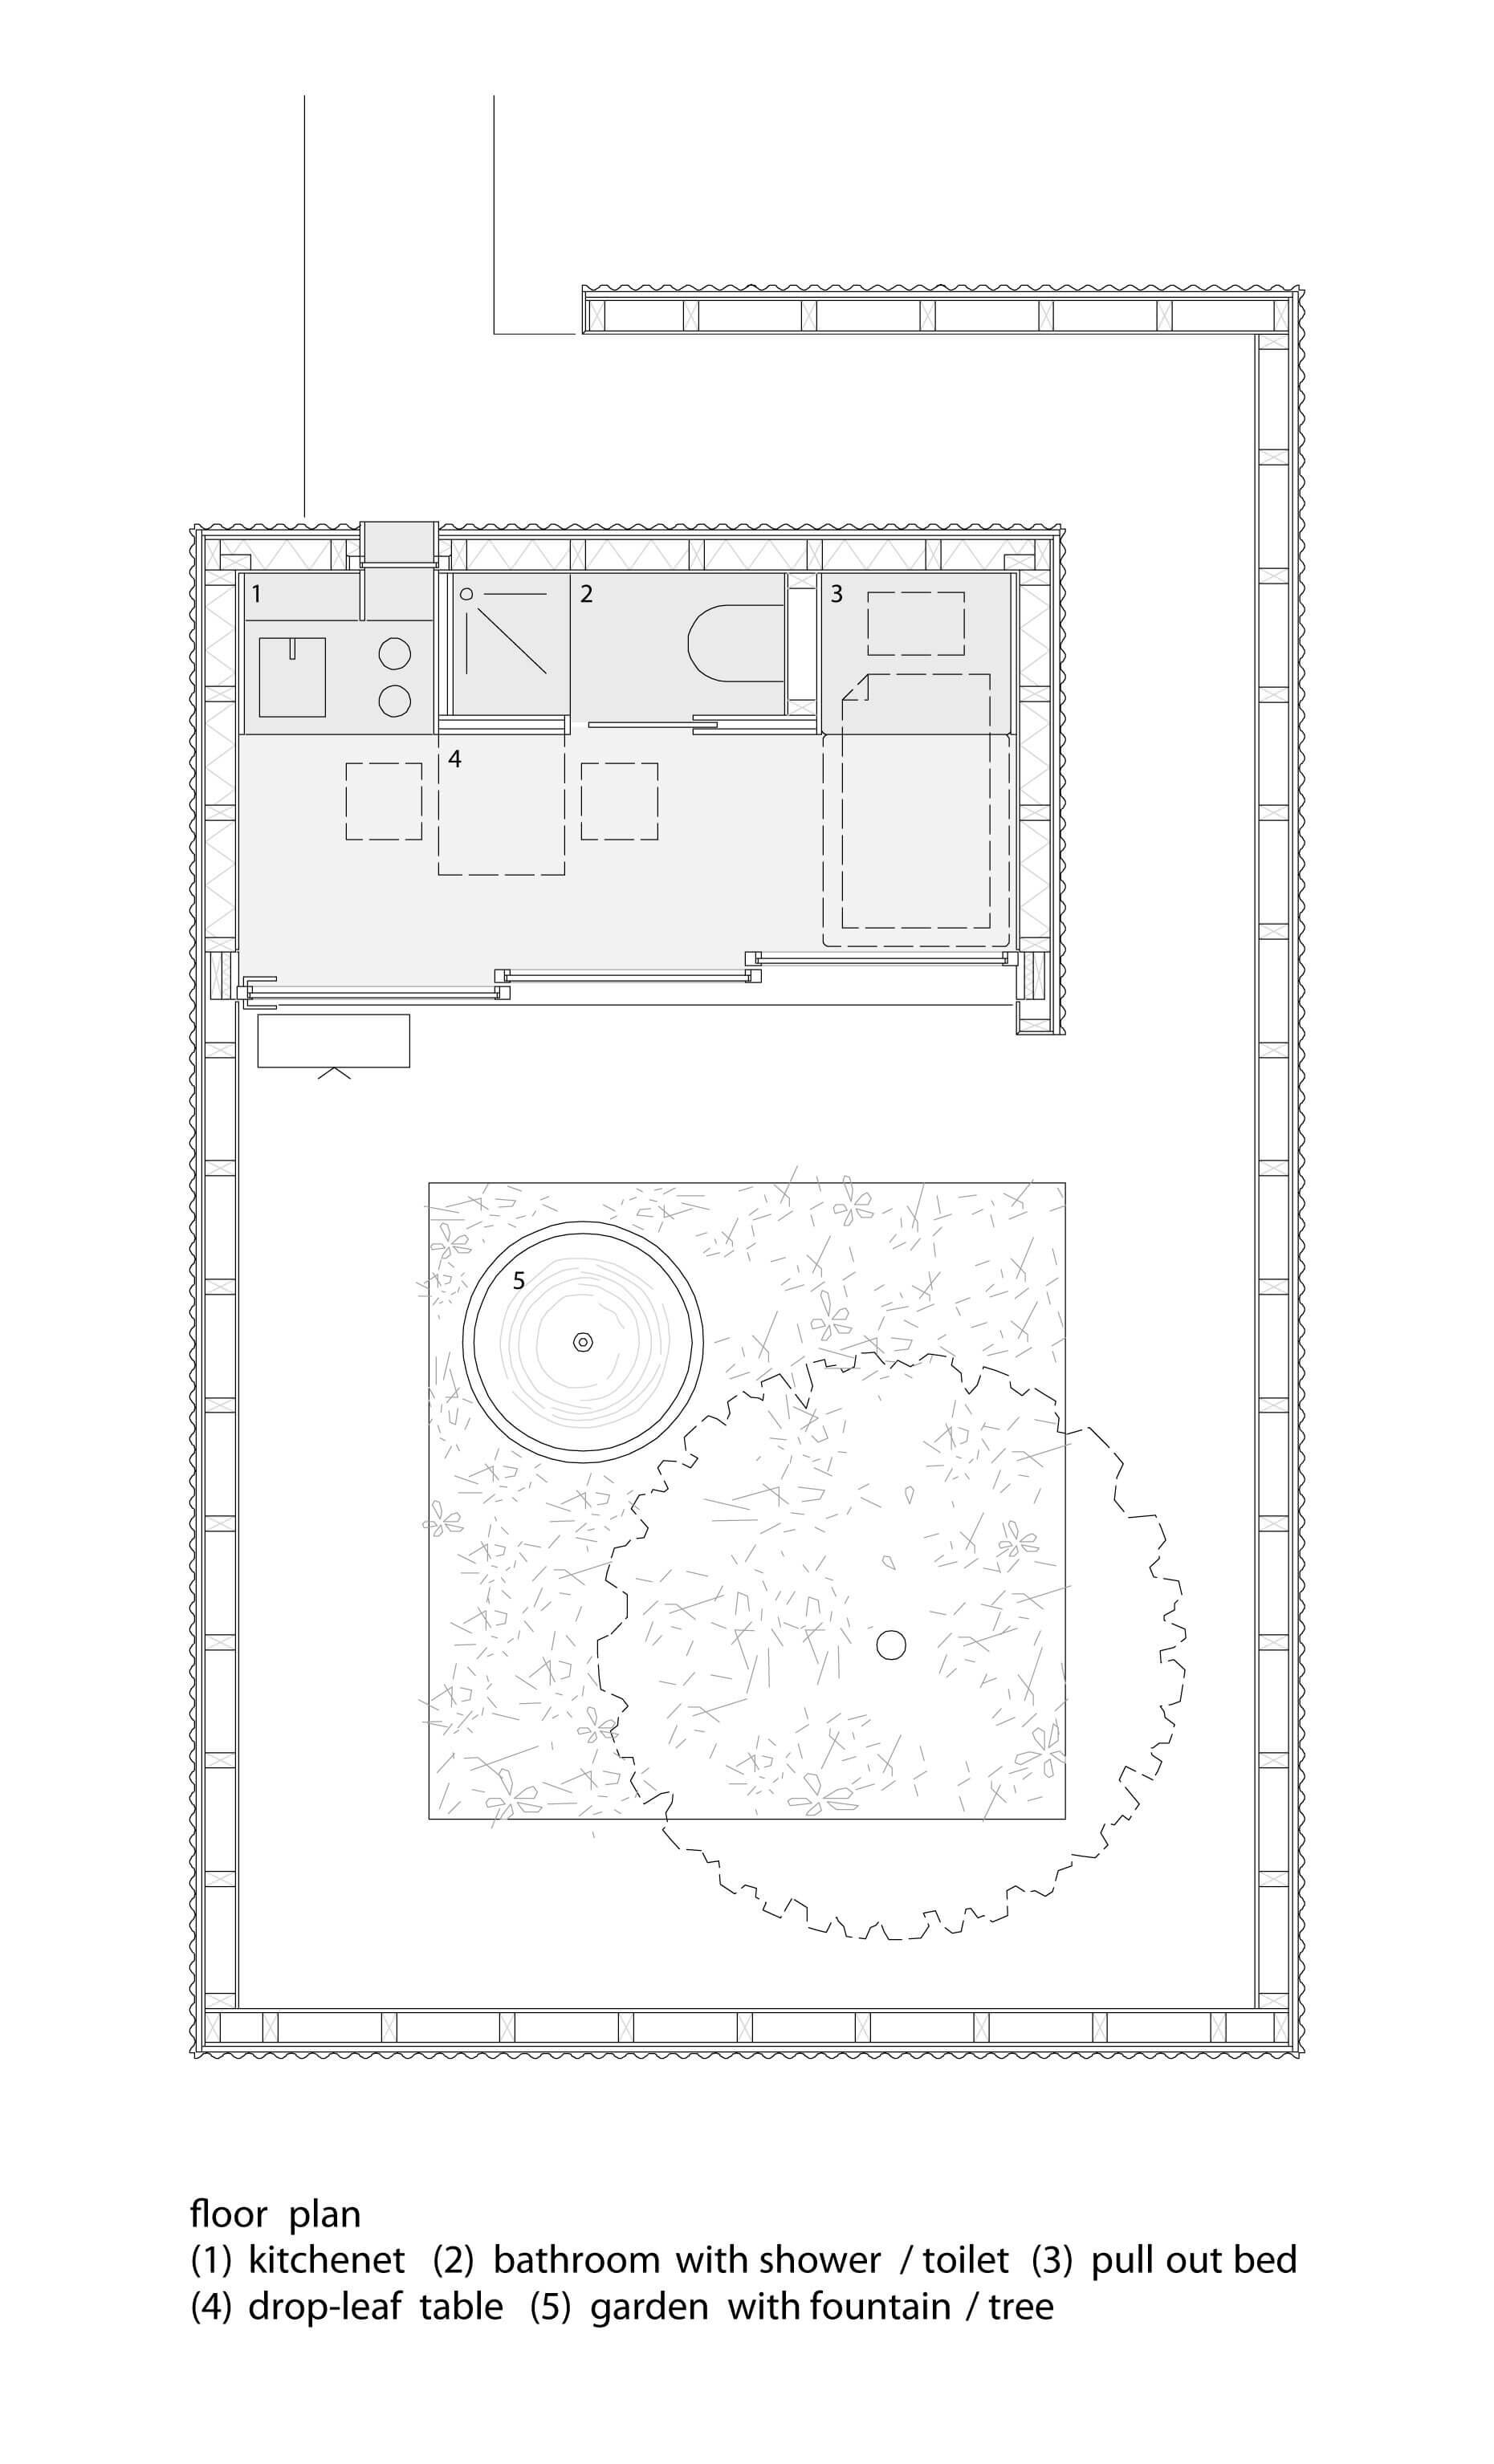 Micro Courtyard House - a 75-Square-Foot Tiny House Built on ... on open courtyard house plans, hospitality floor plans, courtyard home elevations, mediterranean courtyard house plans, bed & breakfast floor plans, interior courtyard house plans, walled courtyard house plans, small courtyard house plans, modern courtyard house plans, center courtyard house plans, hotel floor plans, pool courtyard floor plans, courtyard home designs, courtyard house plans for homes, courtyard home plans guest quarters, courtyard home interiors, enclosed courtyard floor plans, courtyard flooring, courtyard building plans,